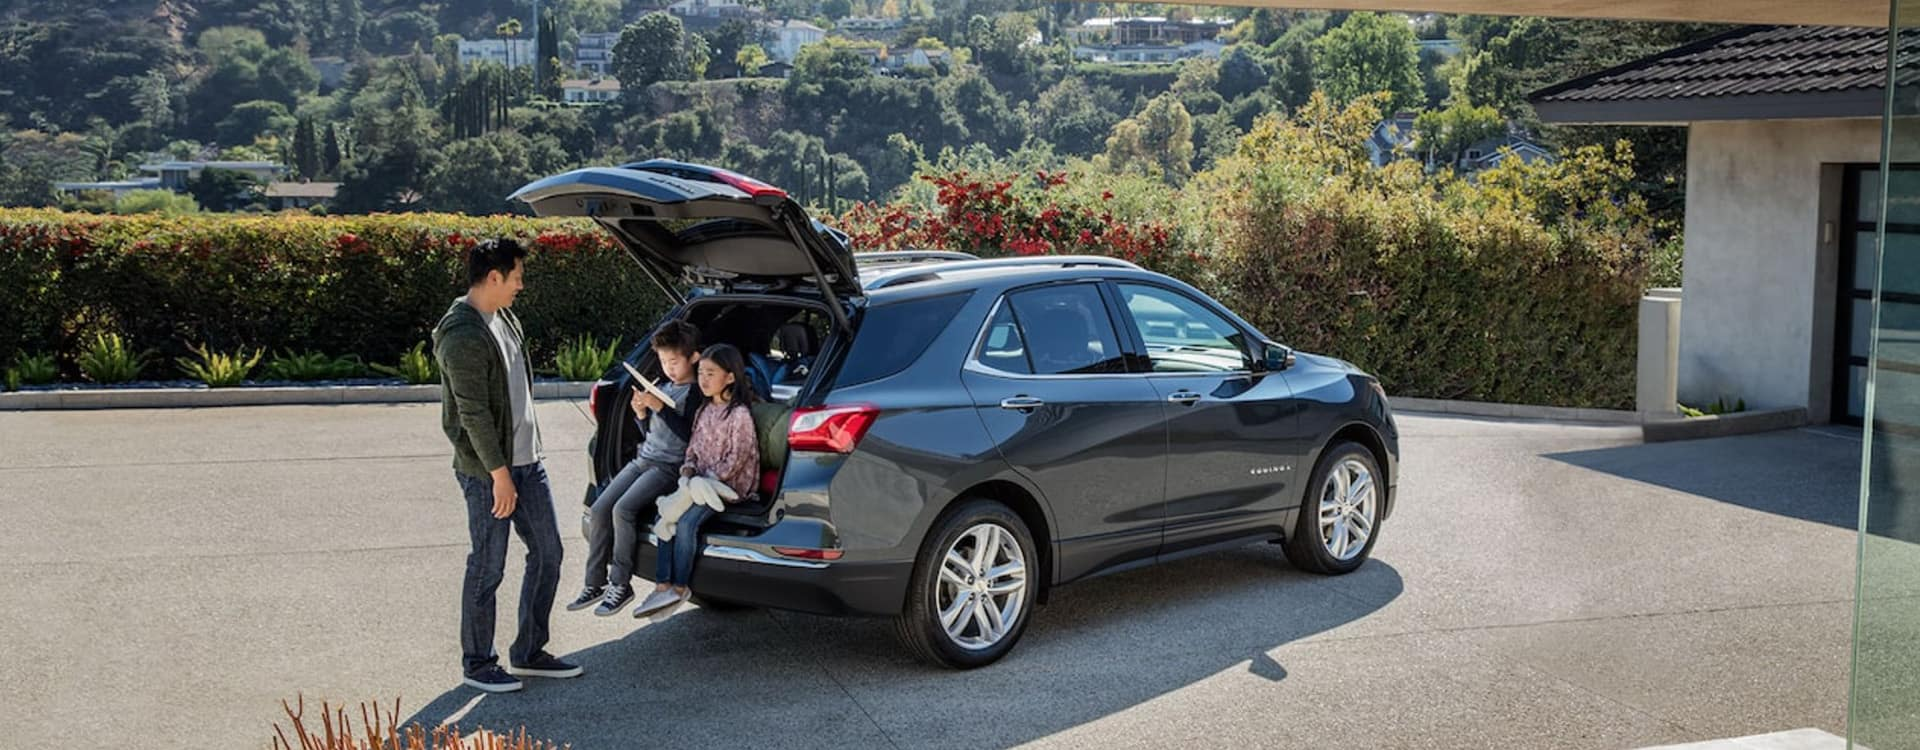 2021 Chevy Equinox in St. Louis